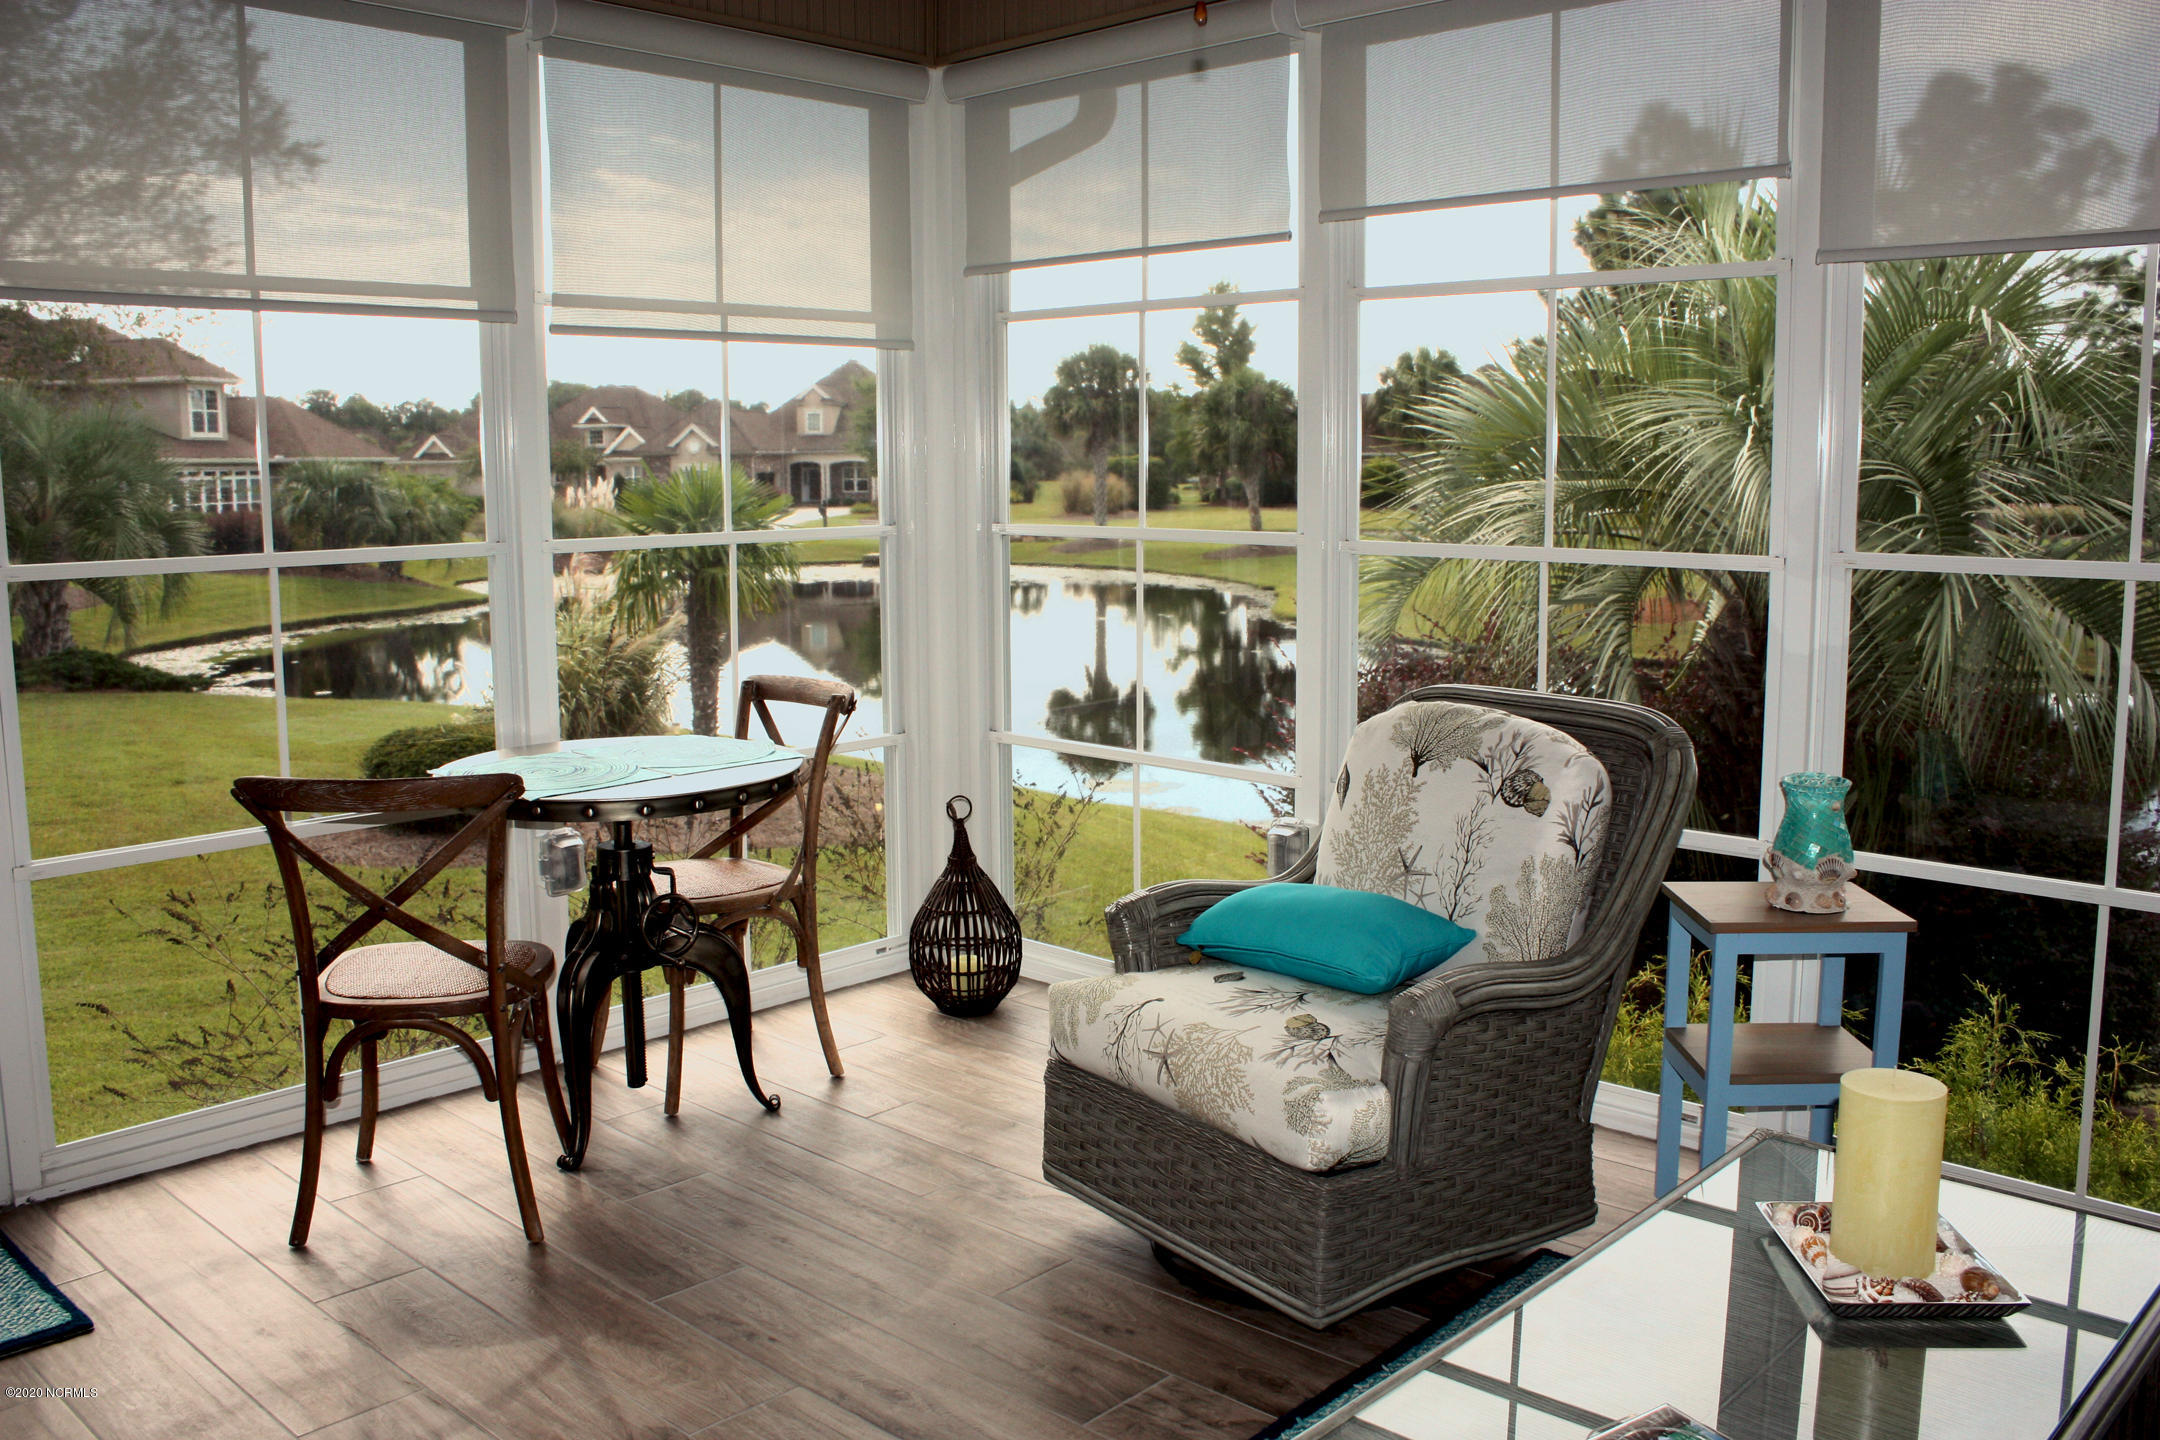 7021 Bloomsbury Court, Ocean Isle Beach, North Carolina 28469, 3 Bedrooms Bedrooms, 8 Rooms Rooms,2 BathroomsBathrooms,Single family residence,For sale,Bloomsbury,100239242